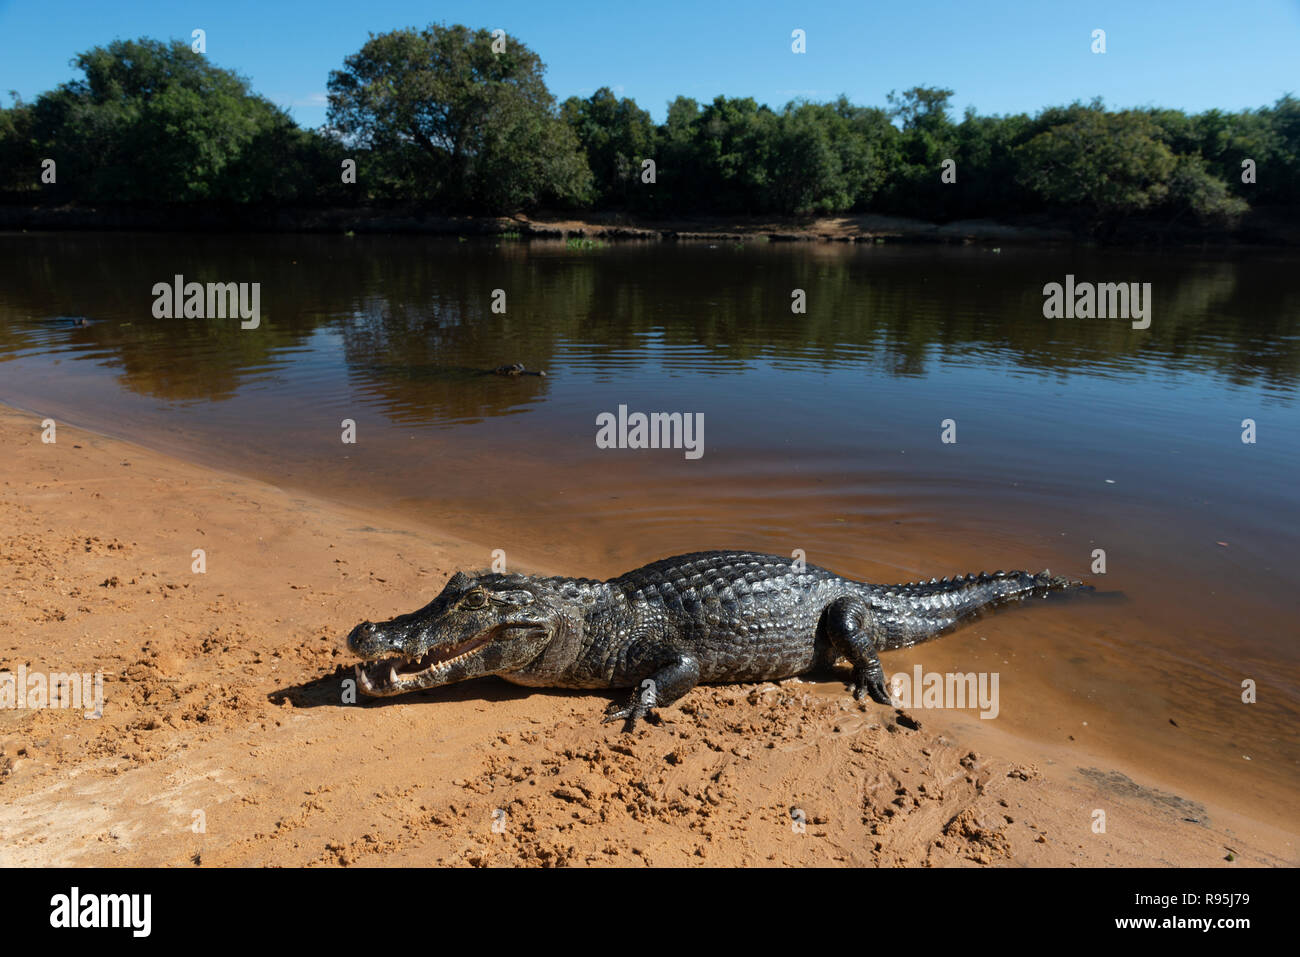 A Caiman  sunning itself on a beach in South Pantanal - Stock Image